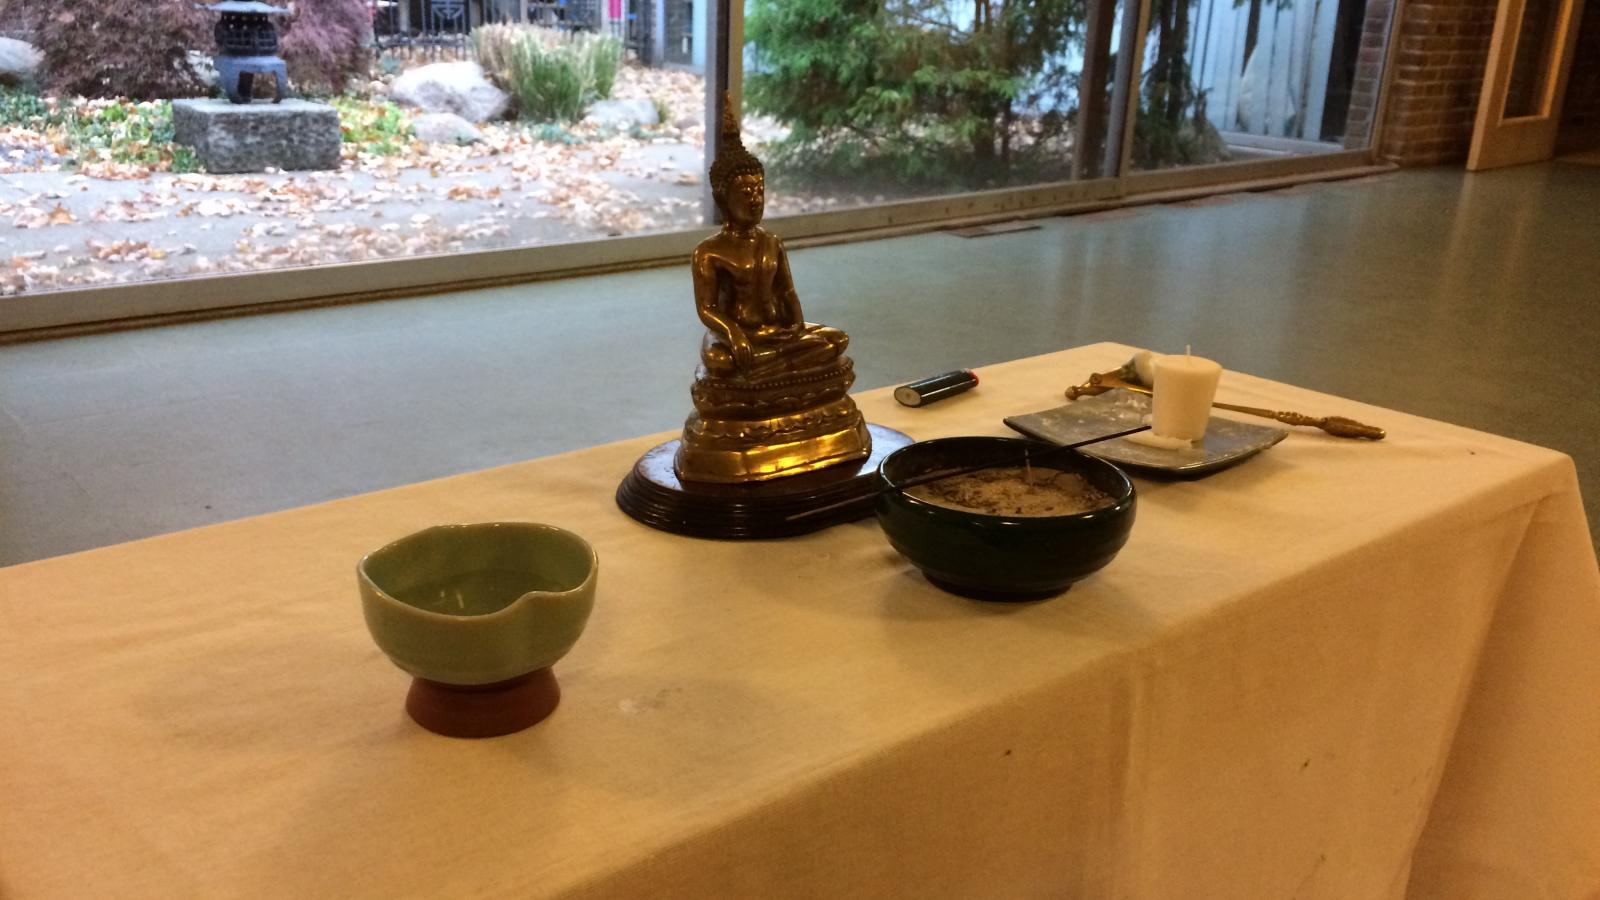 The Buddha altar with a statue of Buddha, incense, a candle and water